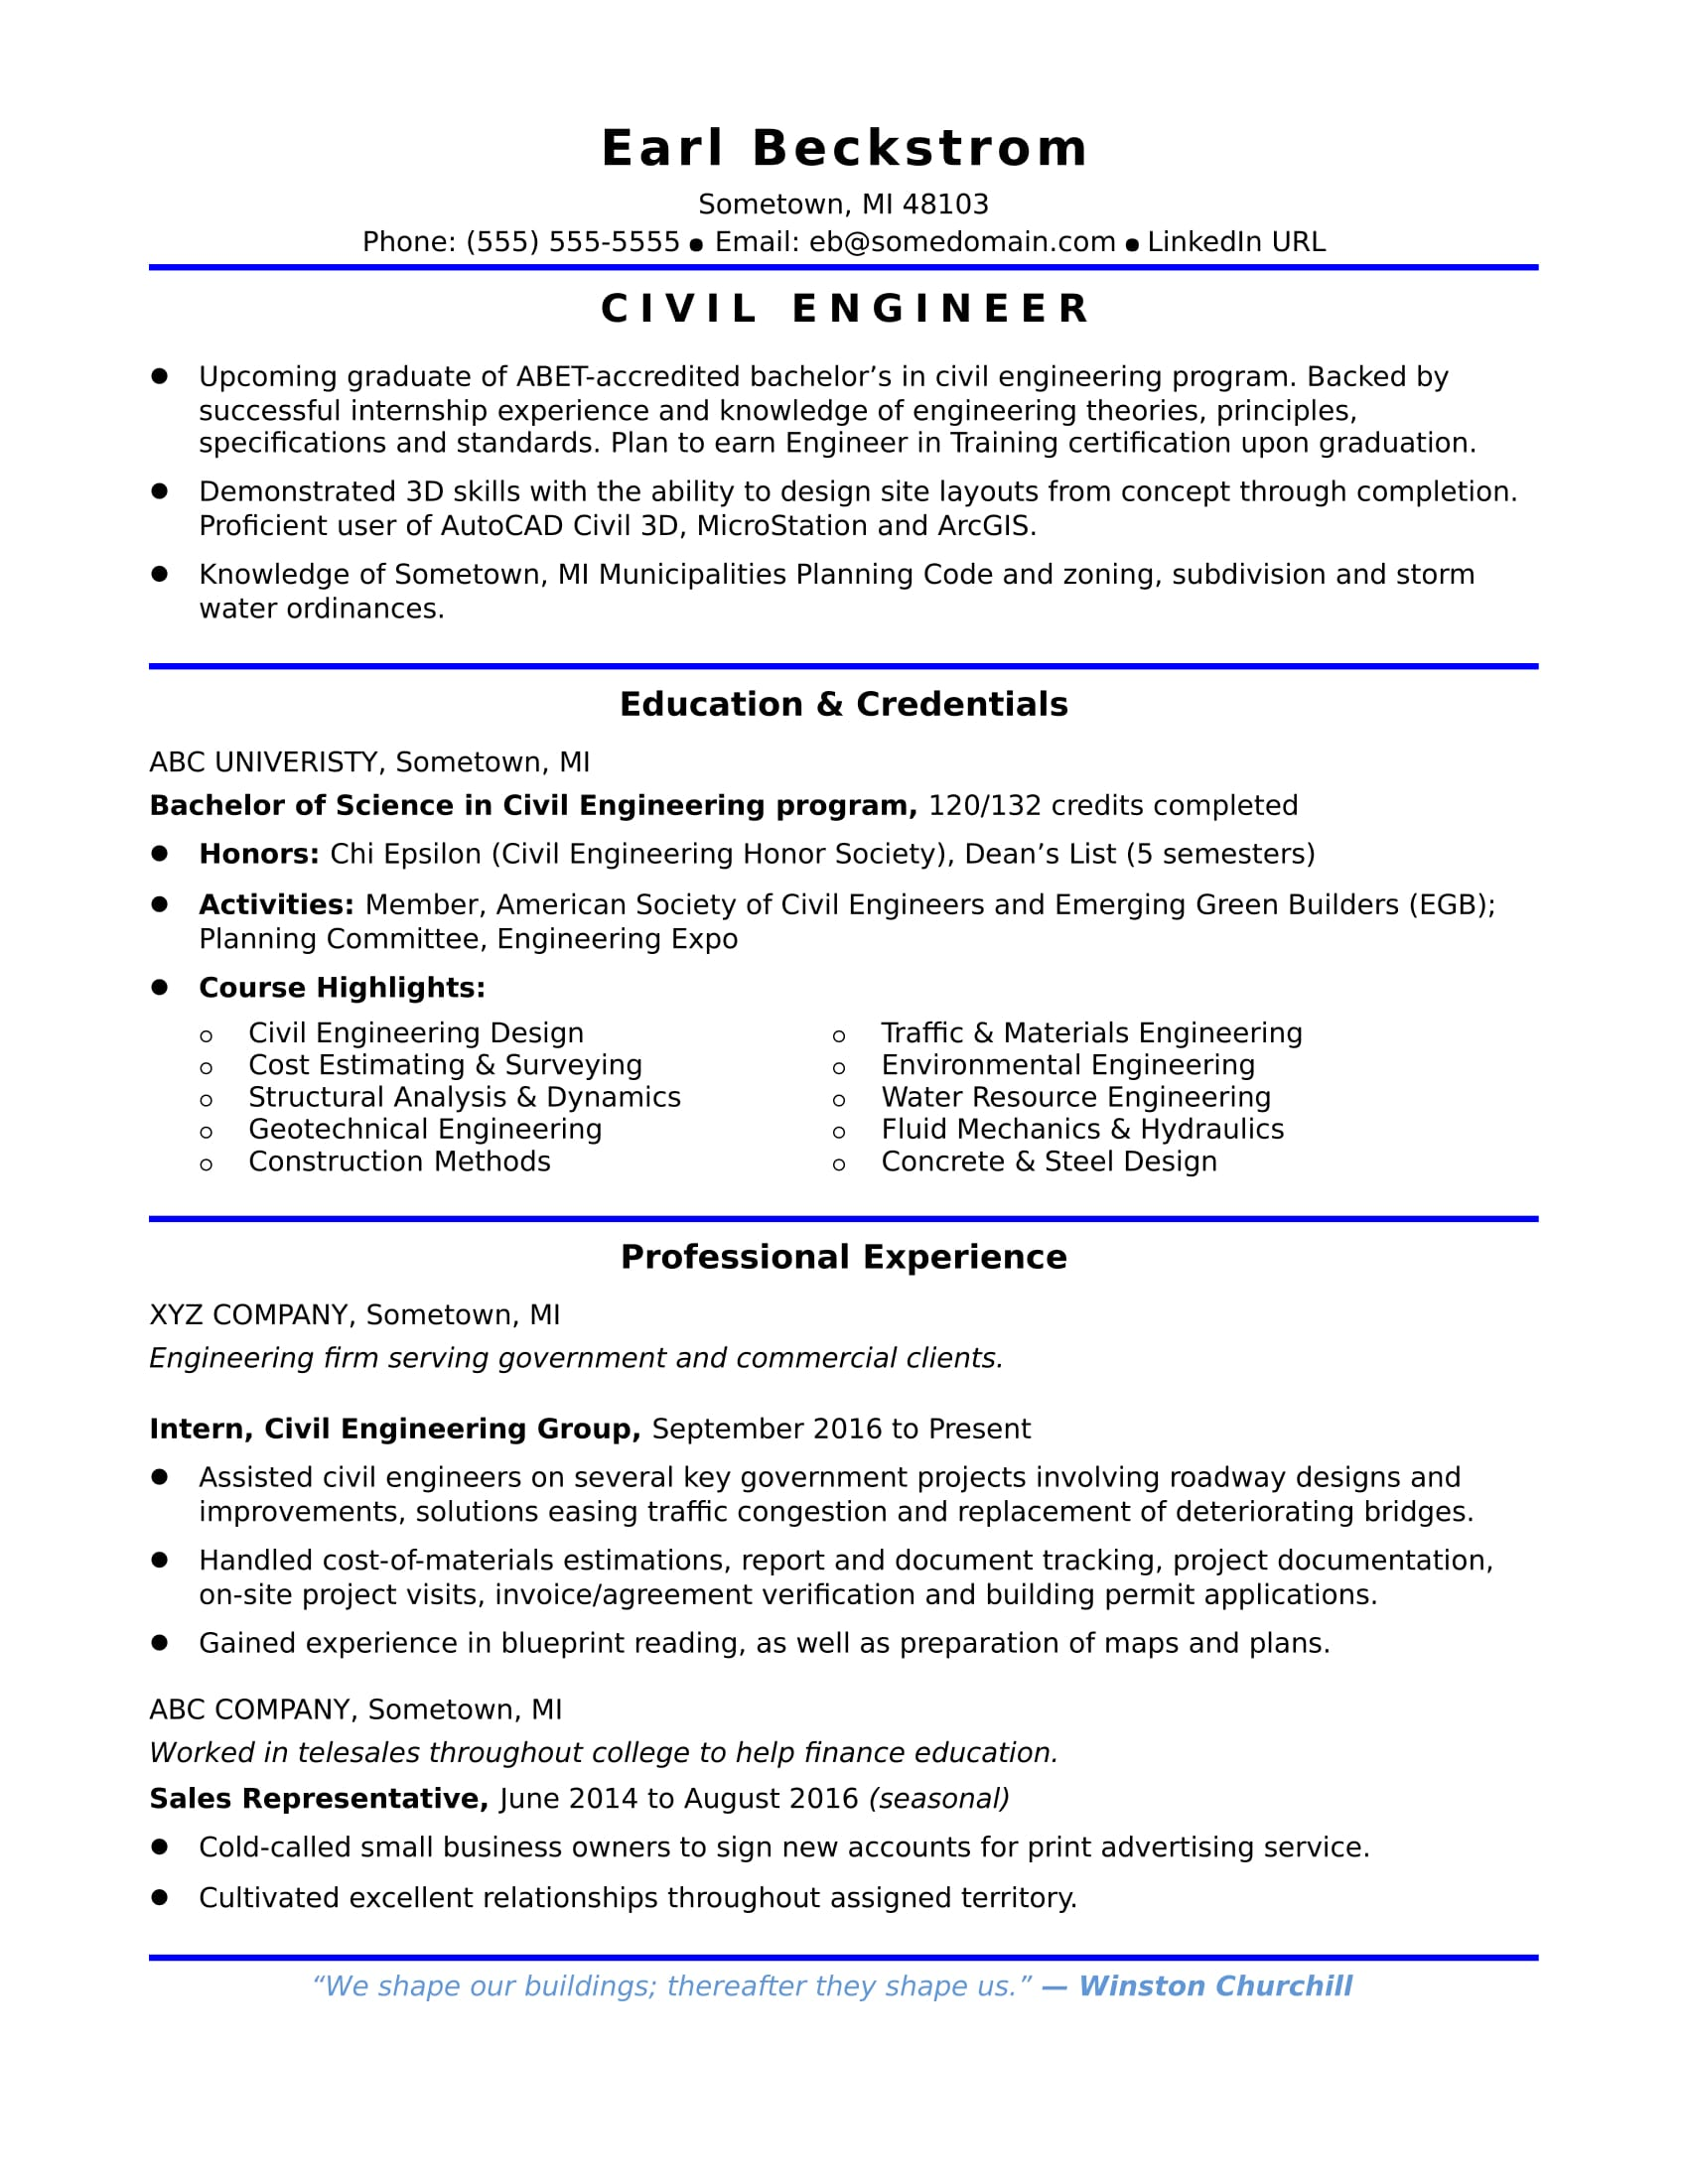 Sample Resume For An Entry Level Civil Engineer  Entry Level Engineering Resume